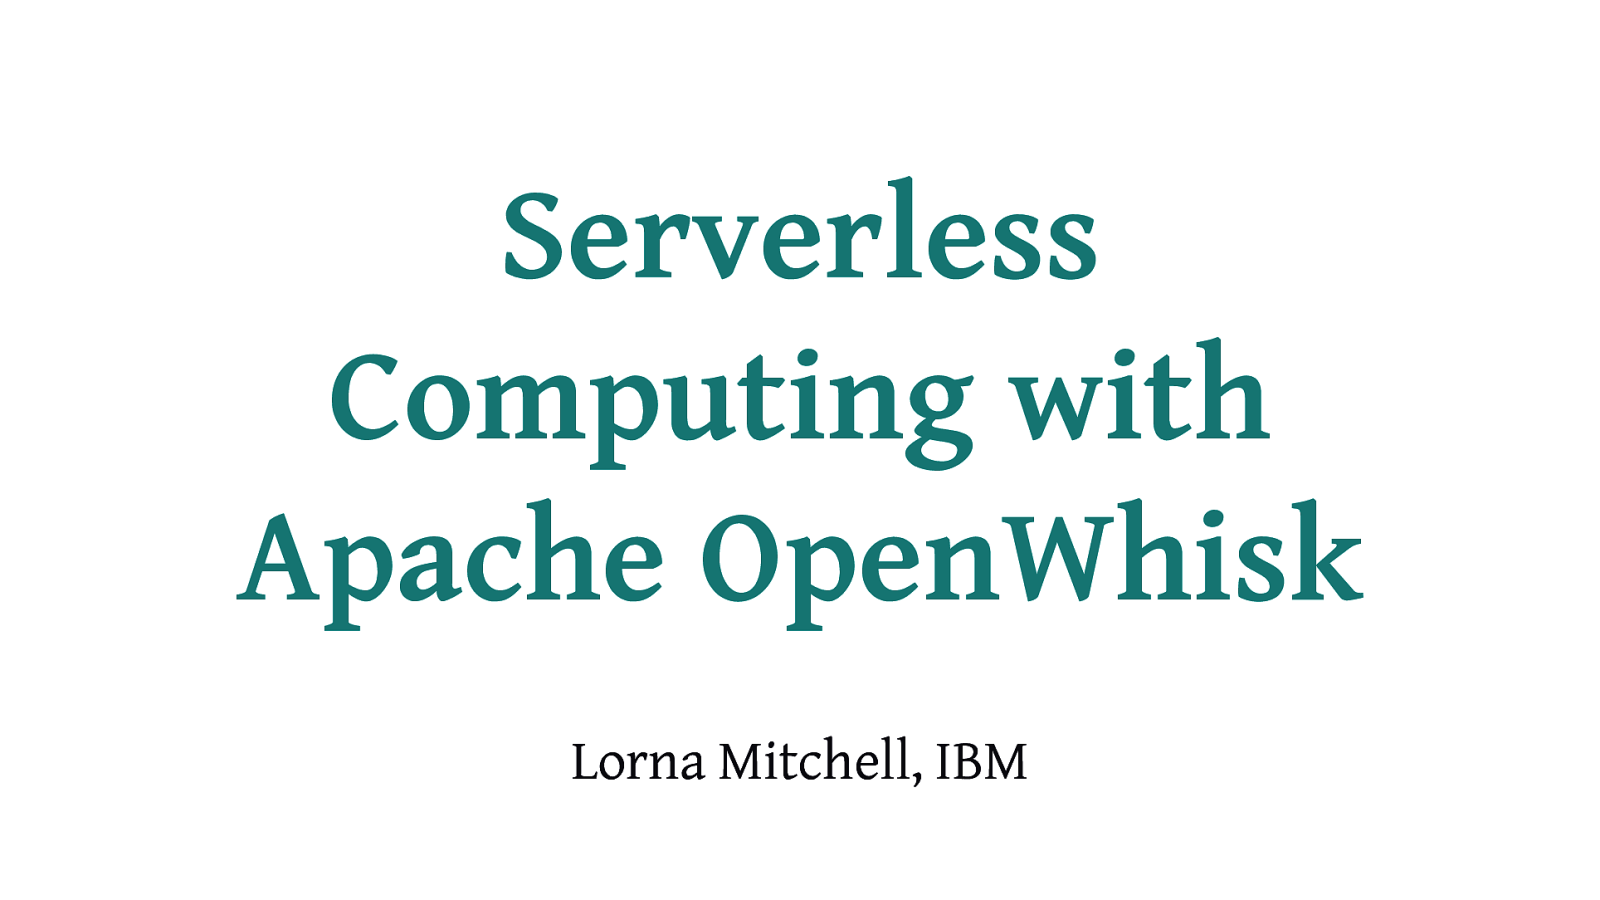 Serverless Computing with Apache OpenWhisk